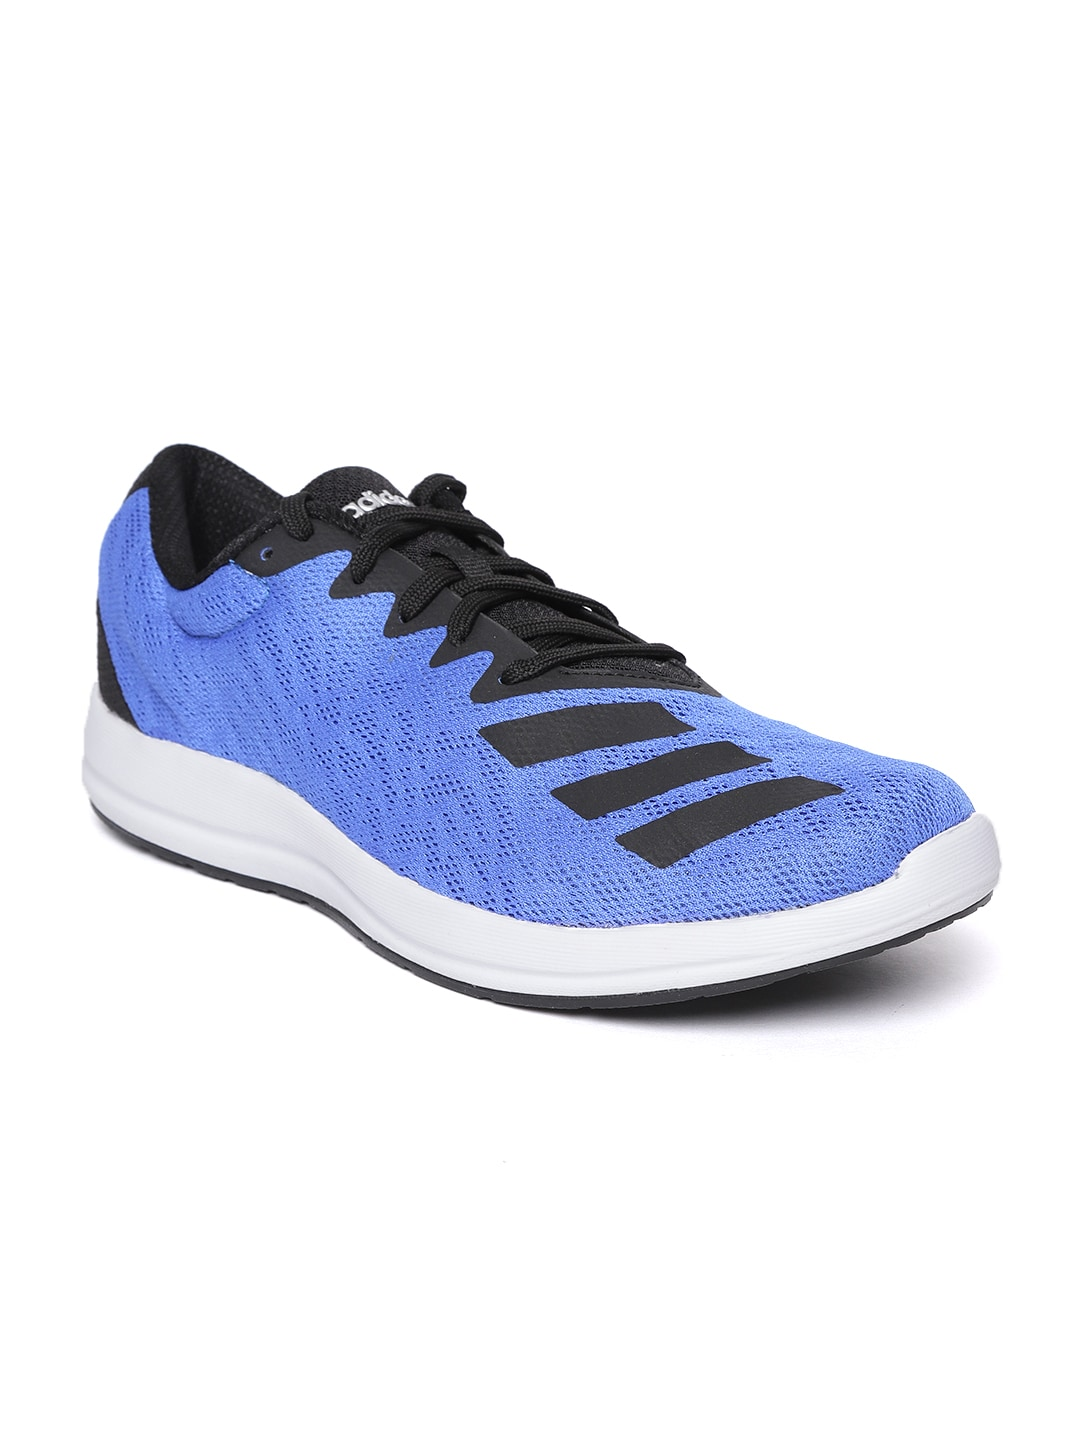 Adidas Tights Sports Shoes Watches - Buy Adidas Tights Sports Shoes Watches  online in India